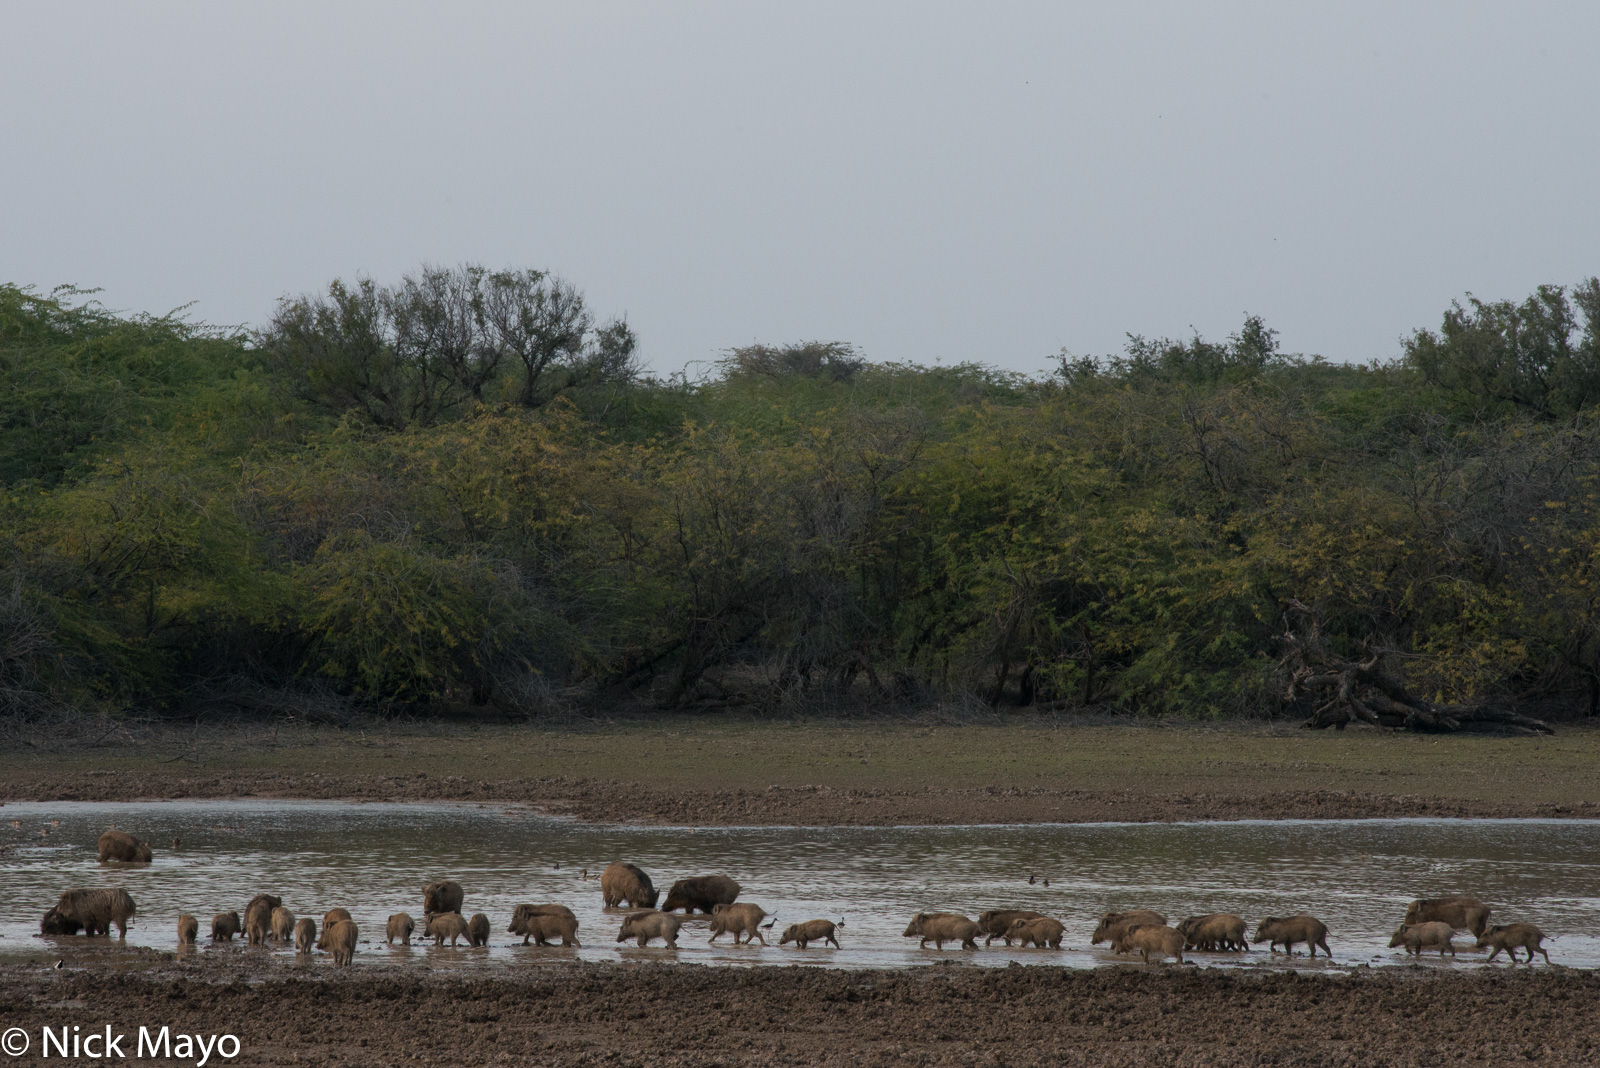 India, Rajasthan, Wild Boar, photo